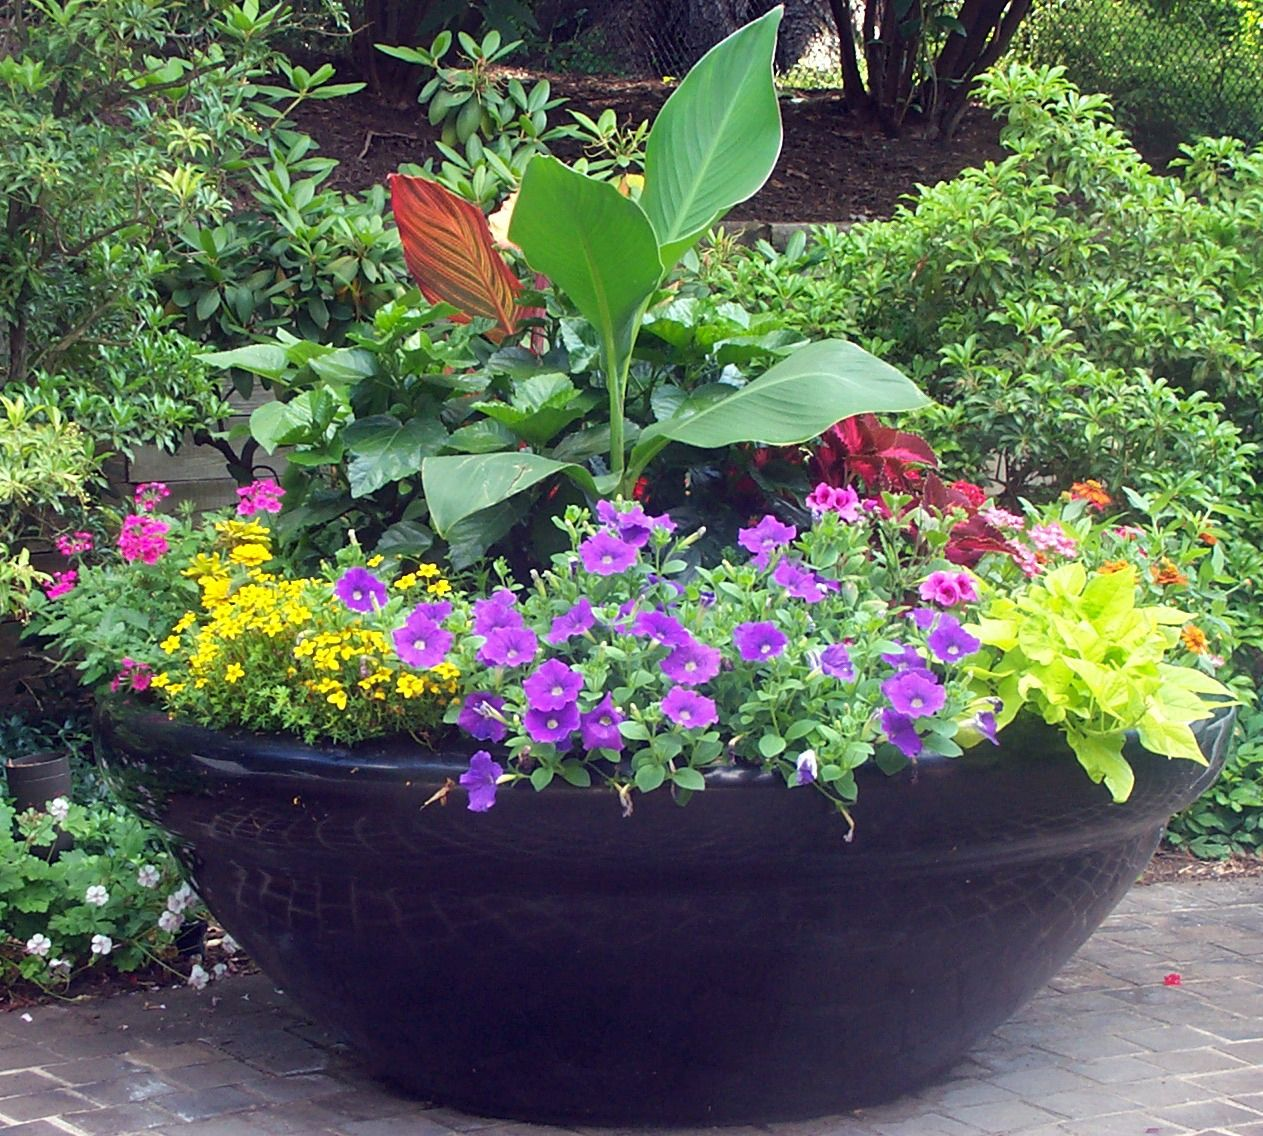 Containers With Pizazz ! Not Your Ordinary Container! | Gardens ...